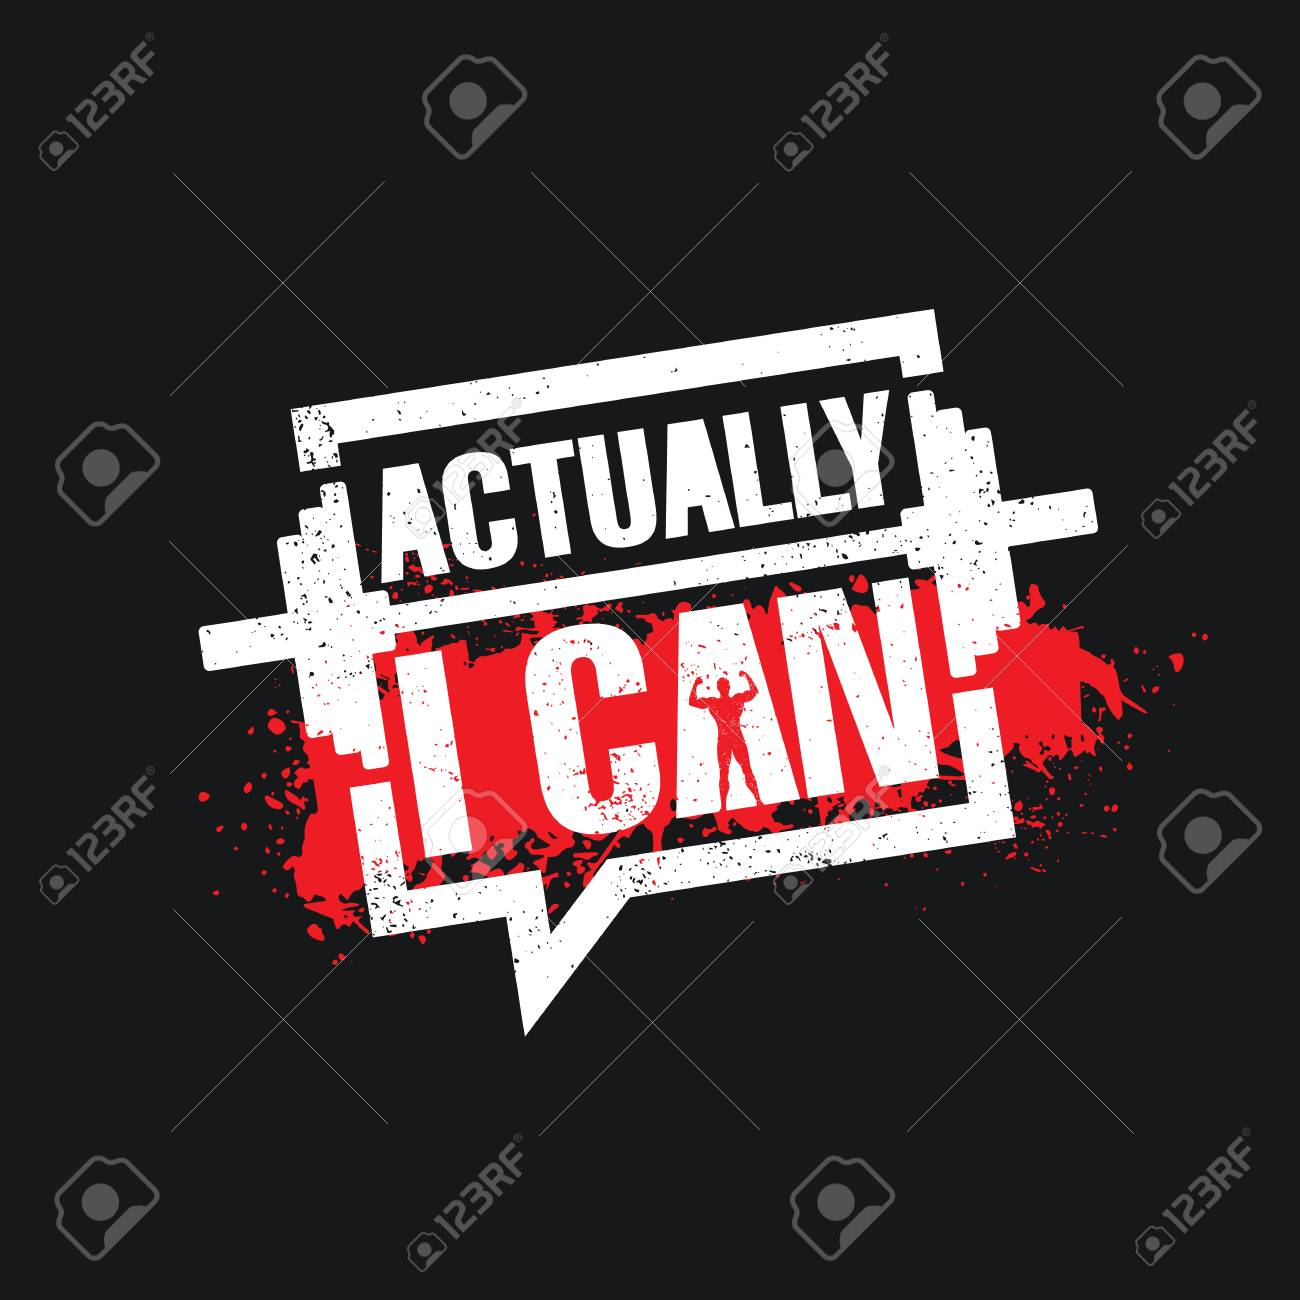 Actually I Can Inspiring Workout And Fitness Gym Motivation